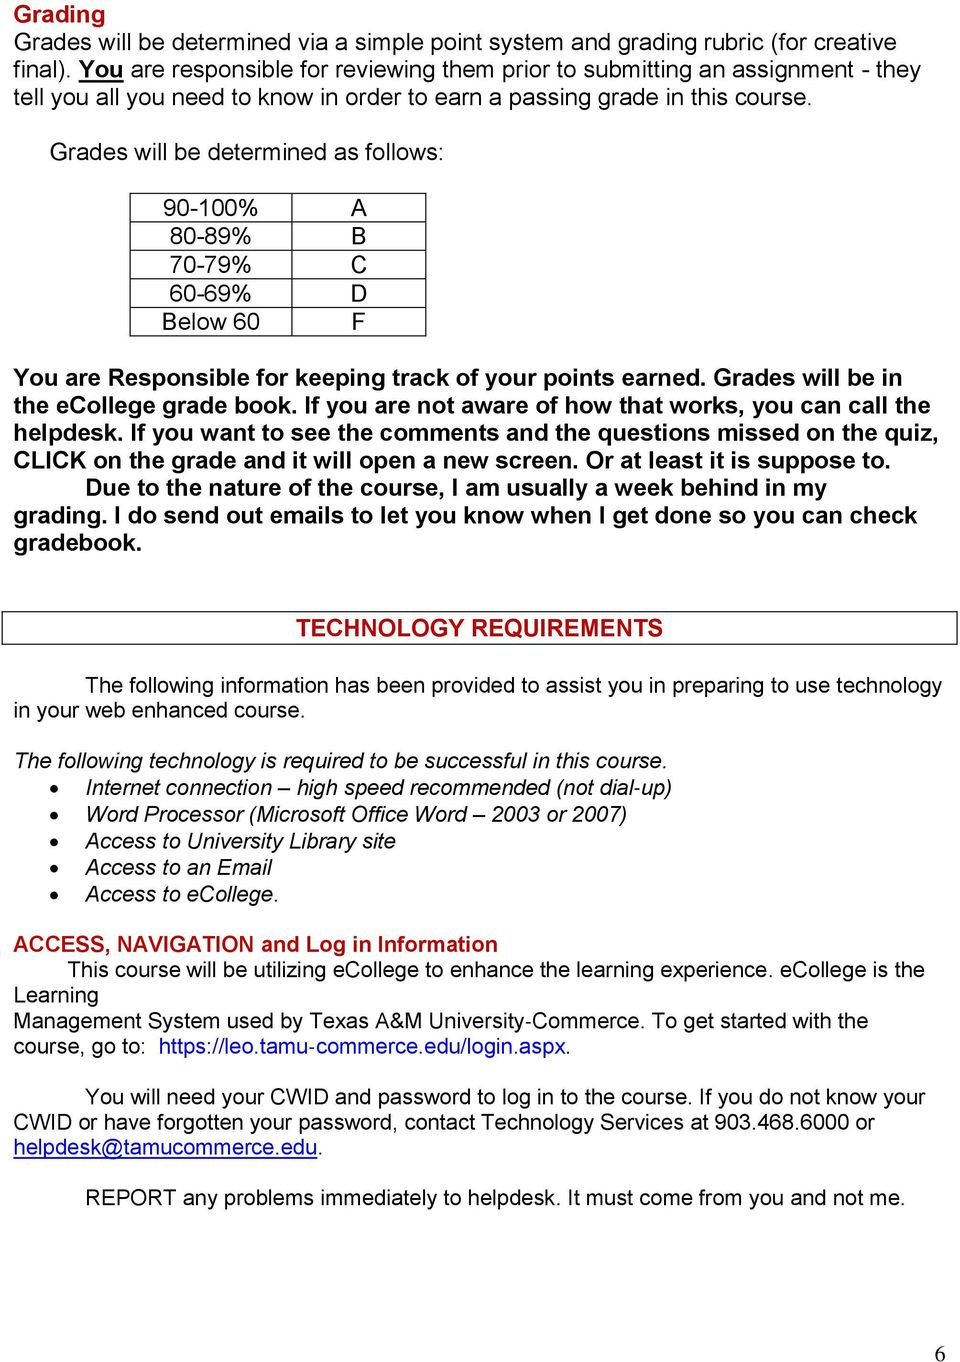 Grades will be determined as follows: 90-100% A 80-89% B 70-79% C 60-69% D Below 60 F You are Responsible for keeping track of your points earned. Grades will be in the ecollege grade book.